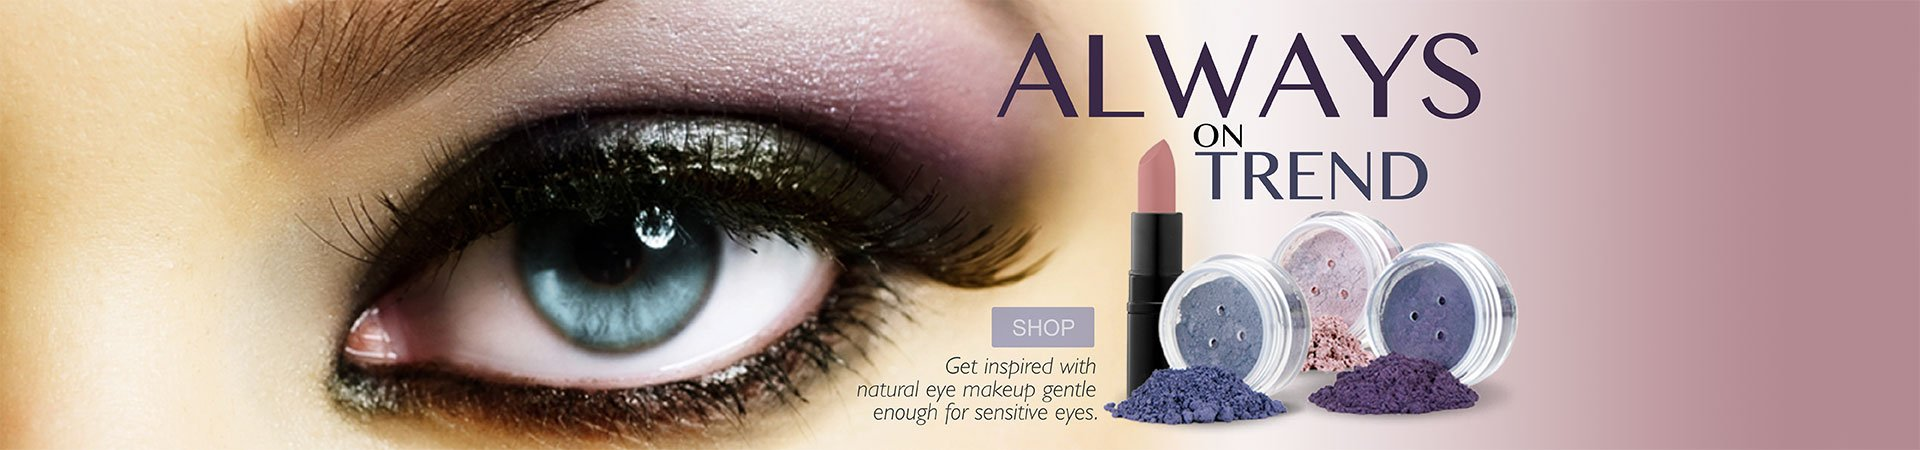 Always on Trend mineral makeup homepage promotion